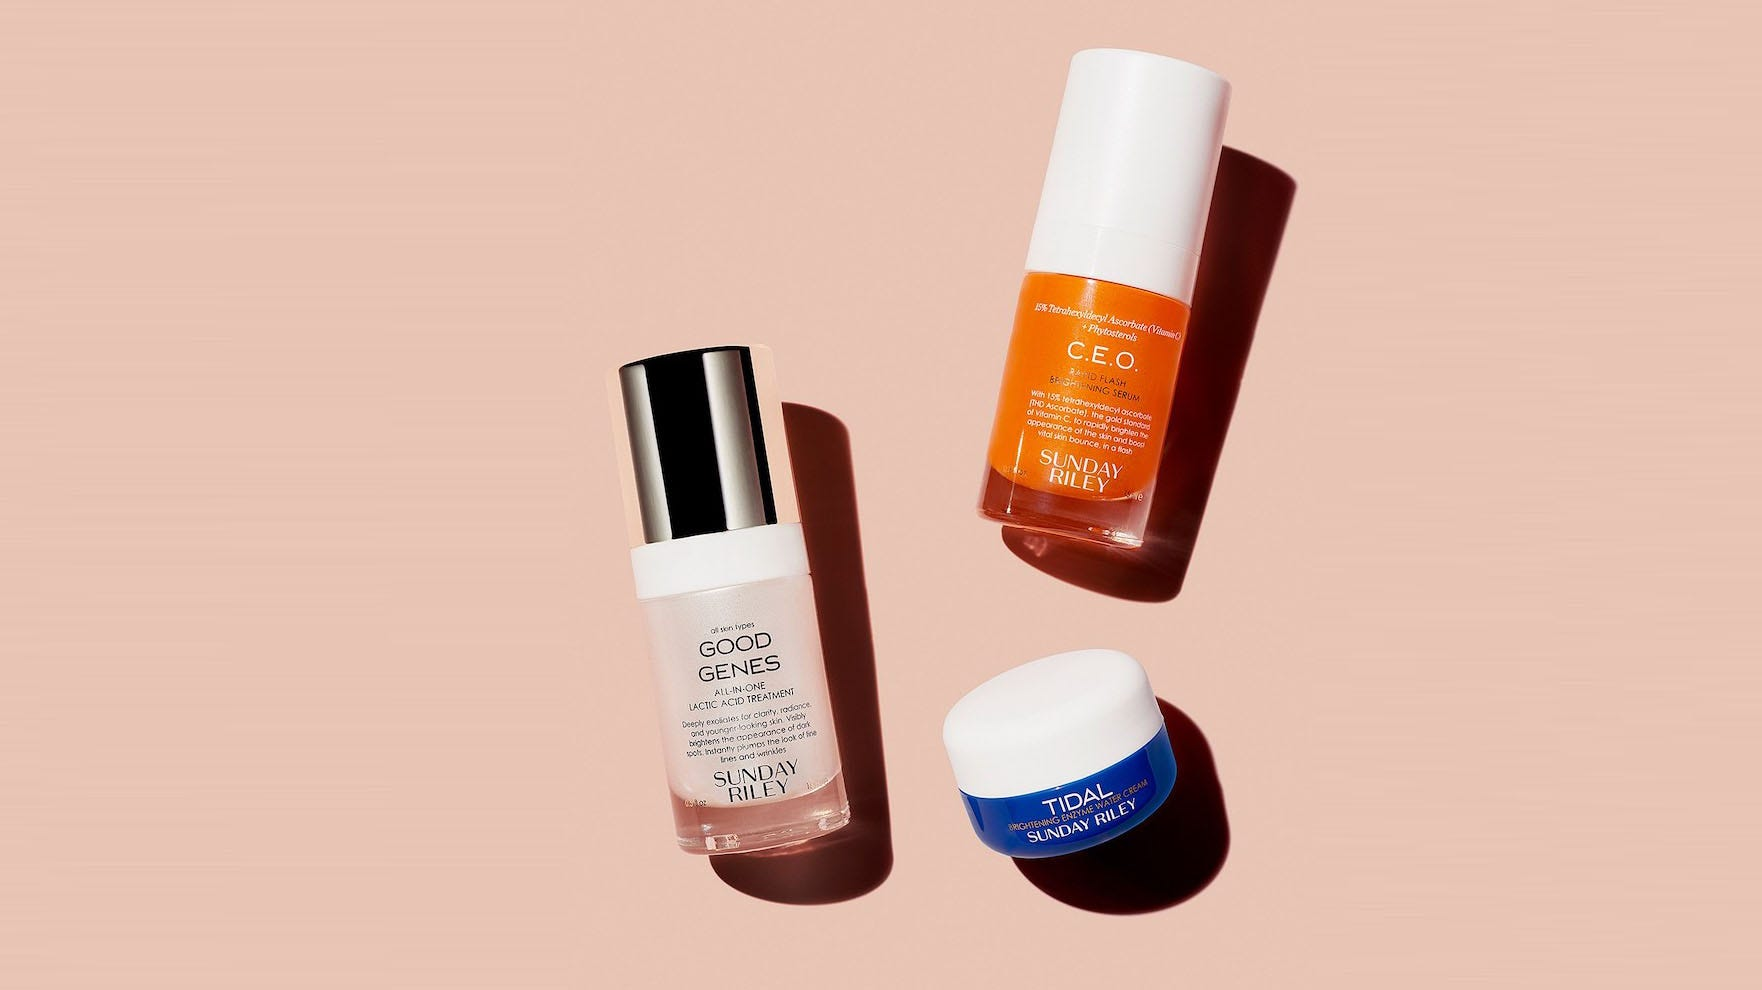 This Macy's beauty sale has products from Clinique, Tarte and more for 40 to 50% off